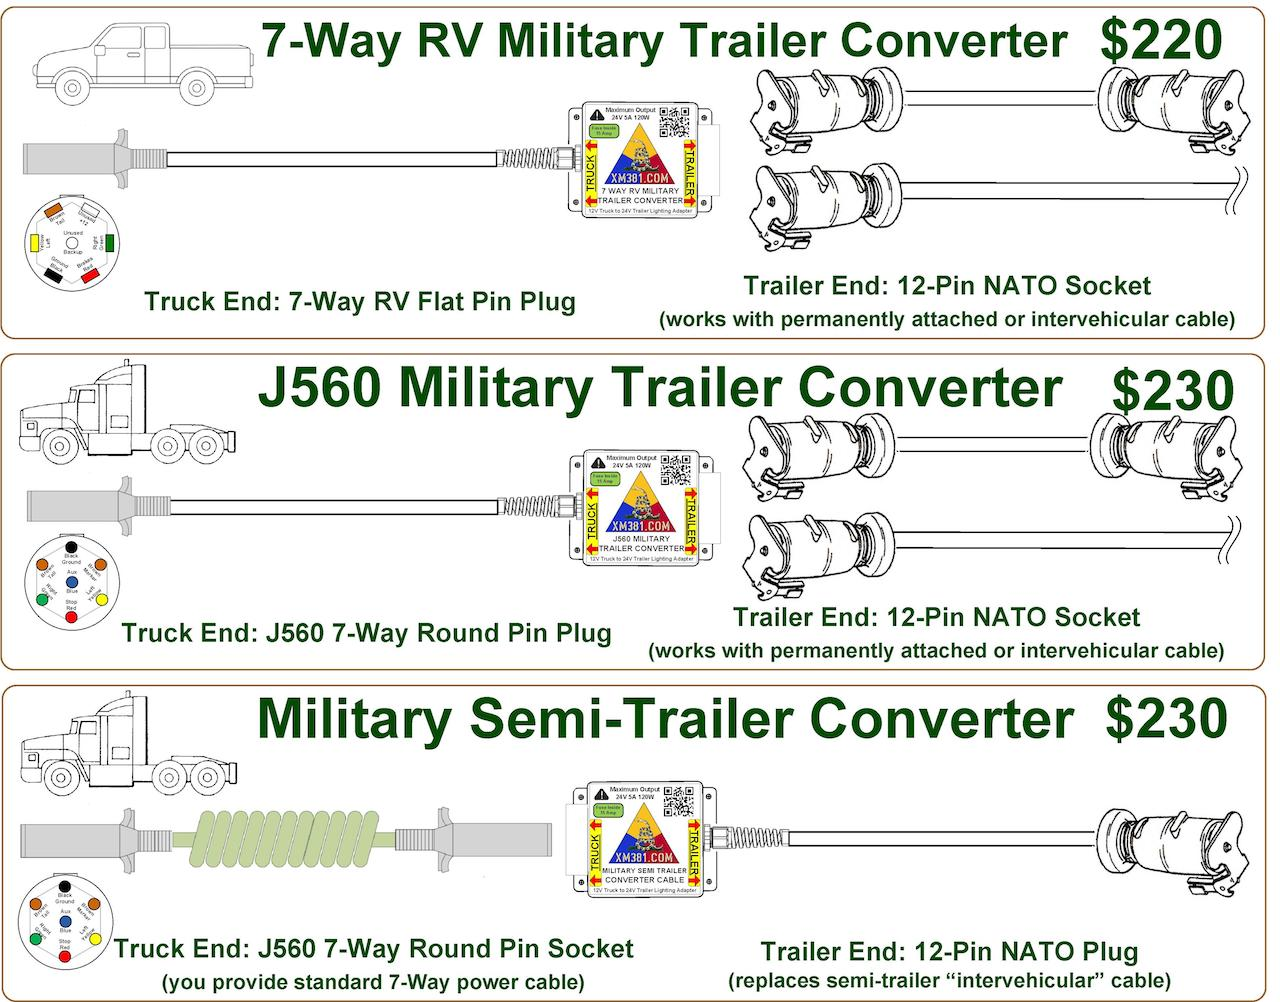 dodge ram 3500 trailer wiring diagram nato trailer wiring diagram 12 pin nato trailer plug wiring diagram - somurich.com